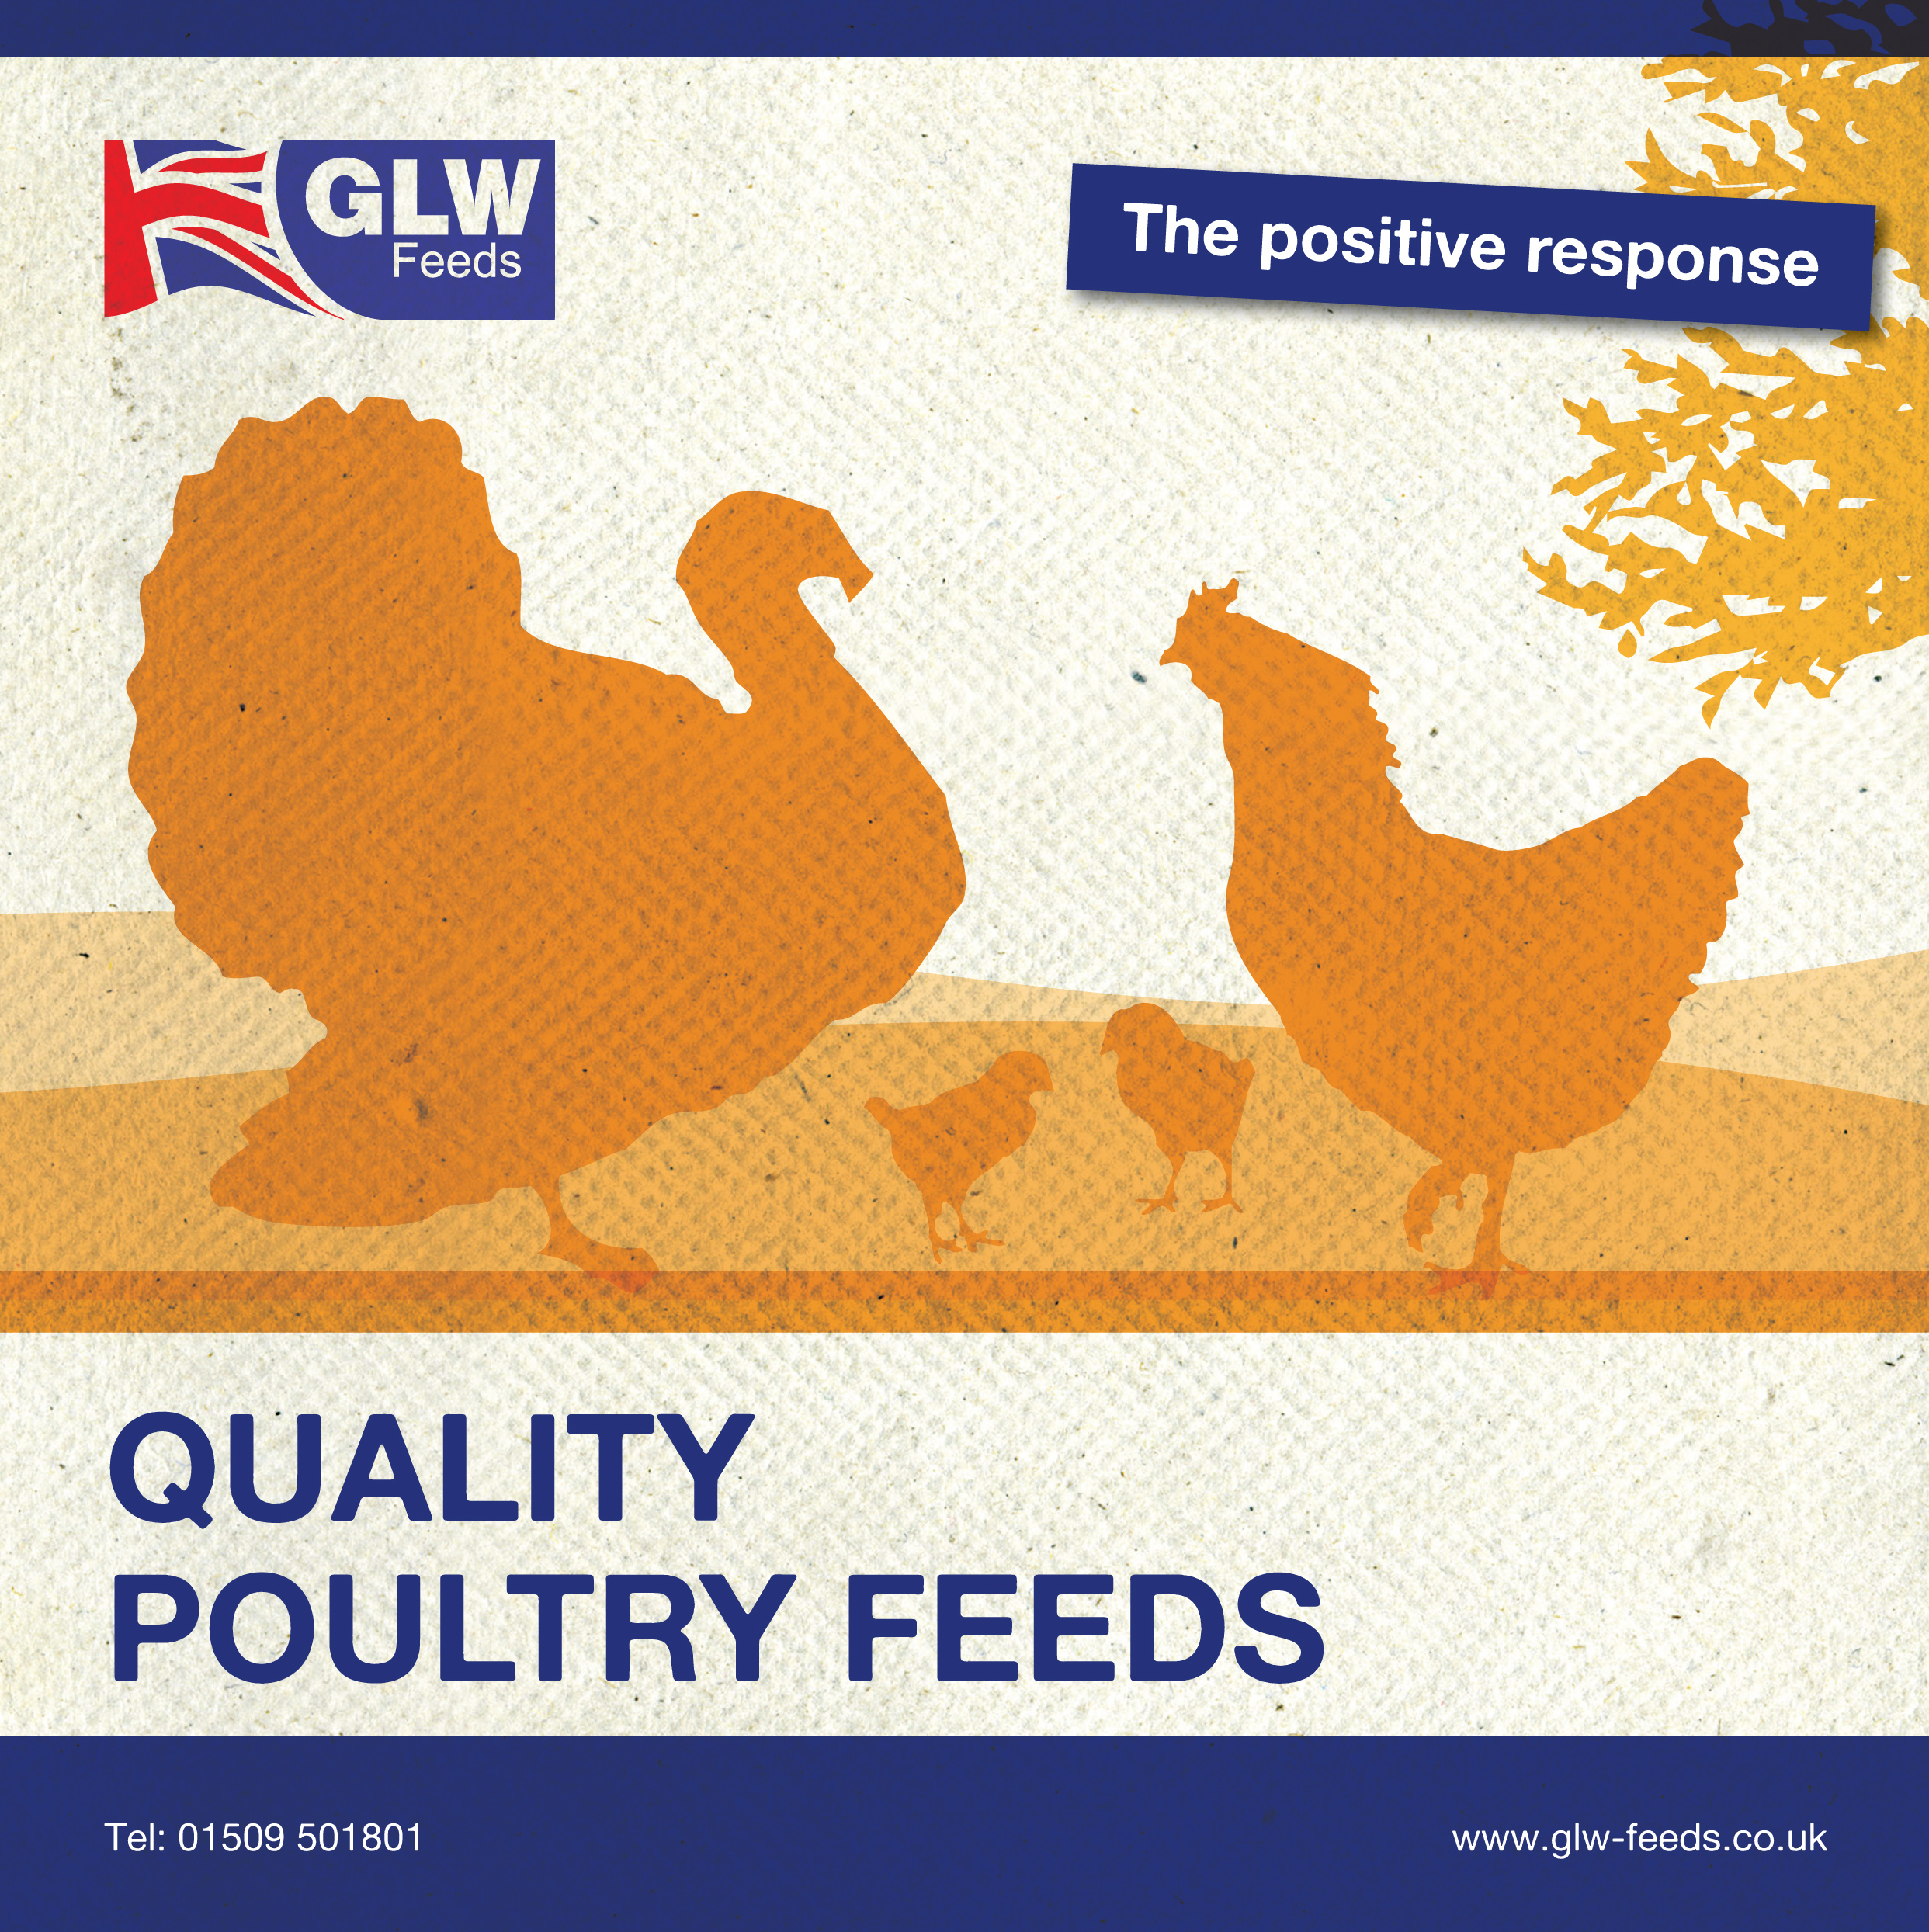 GLW Poultry Brochure 210x210 AW 140508.indd